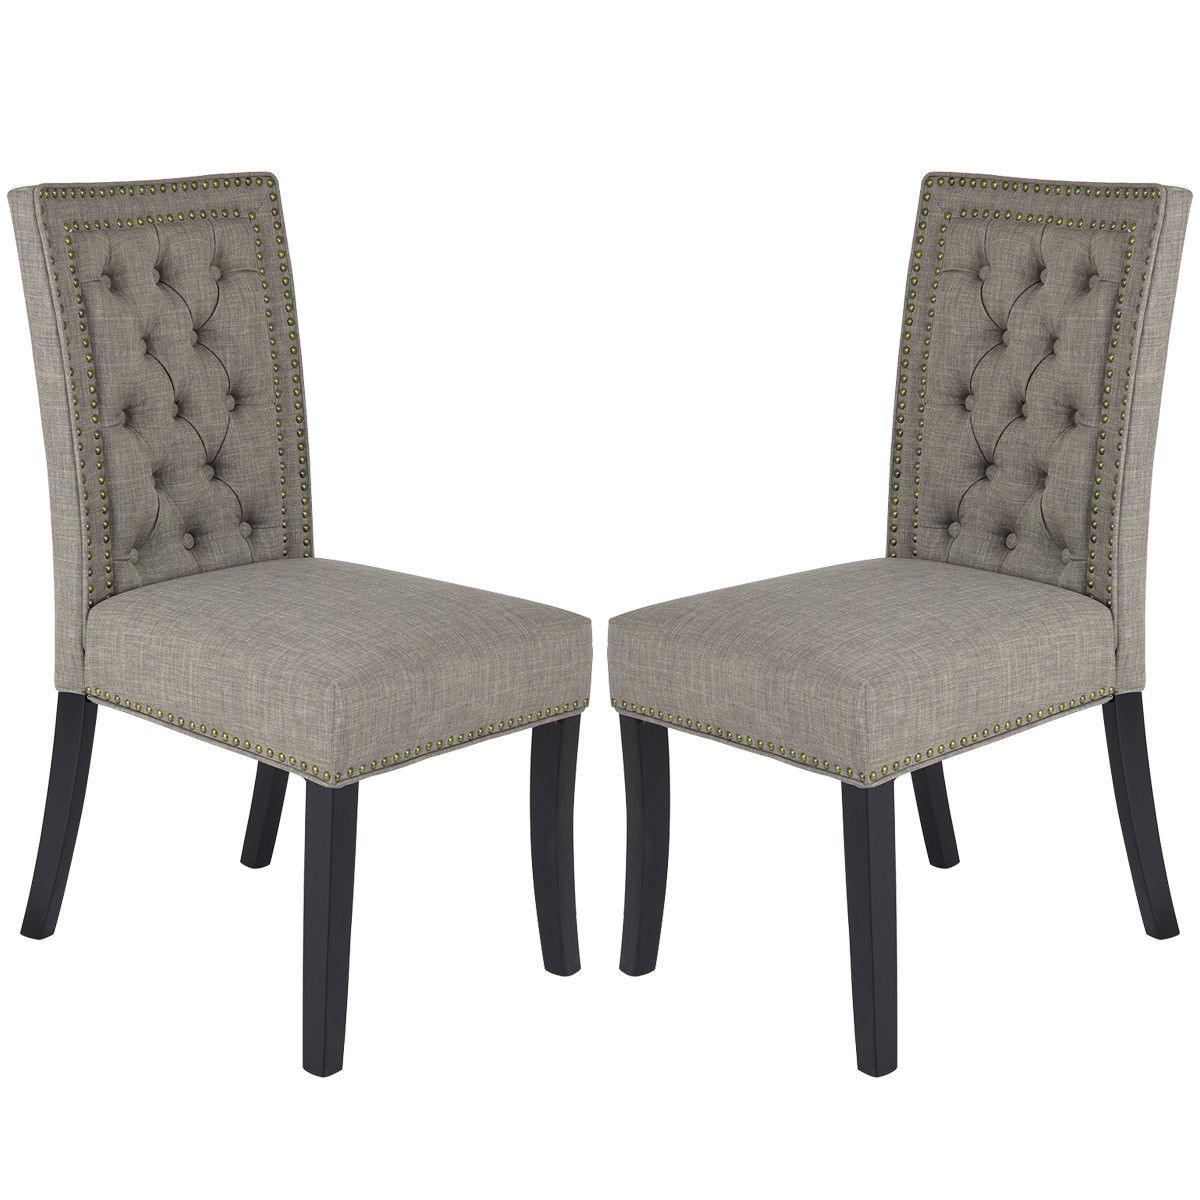 Costway Set Of 2 Fabric Dining Chairs With Rubber Wood Legs Home Kitchen  Furniture Brown